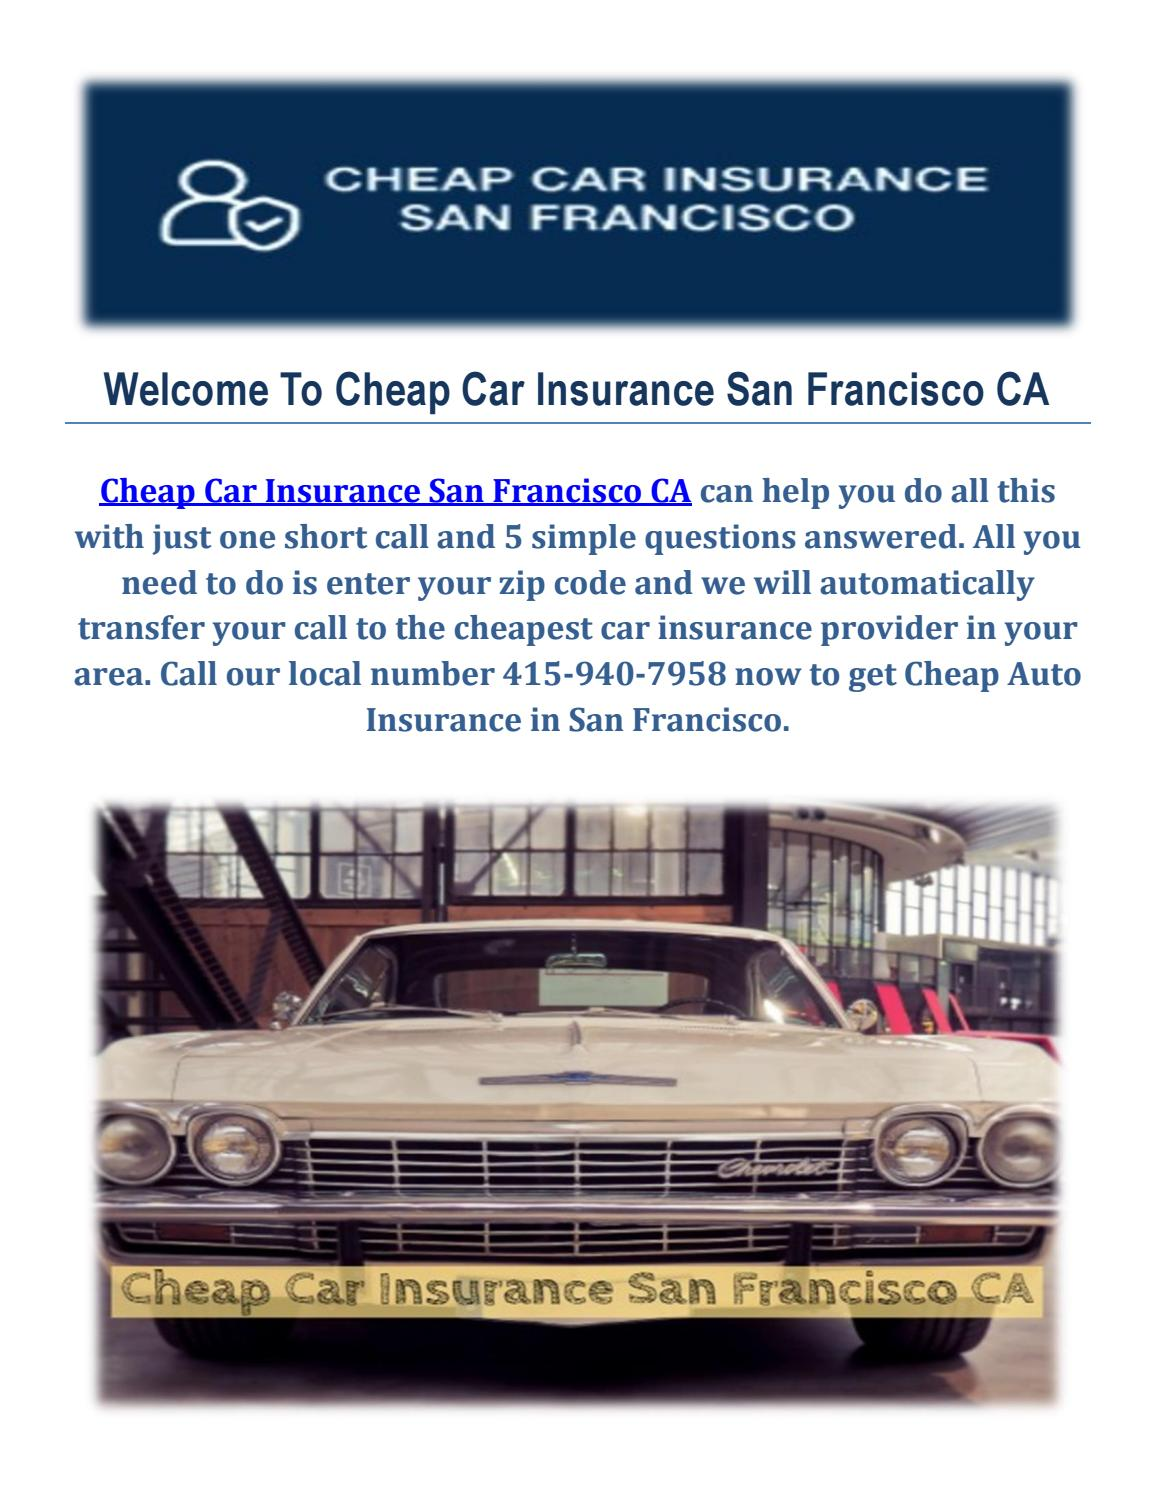 Get Cheap Insurance Get Cheap Auto Insurance In San Francisco Ca By Cheap Car